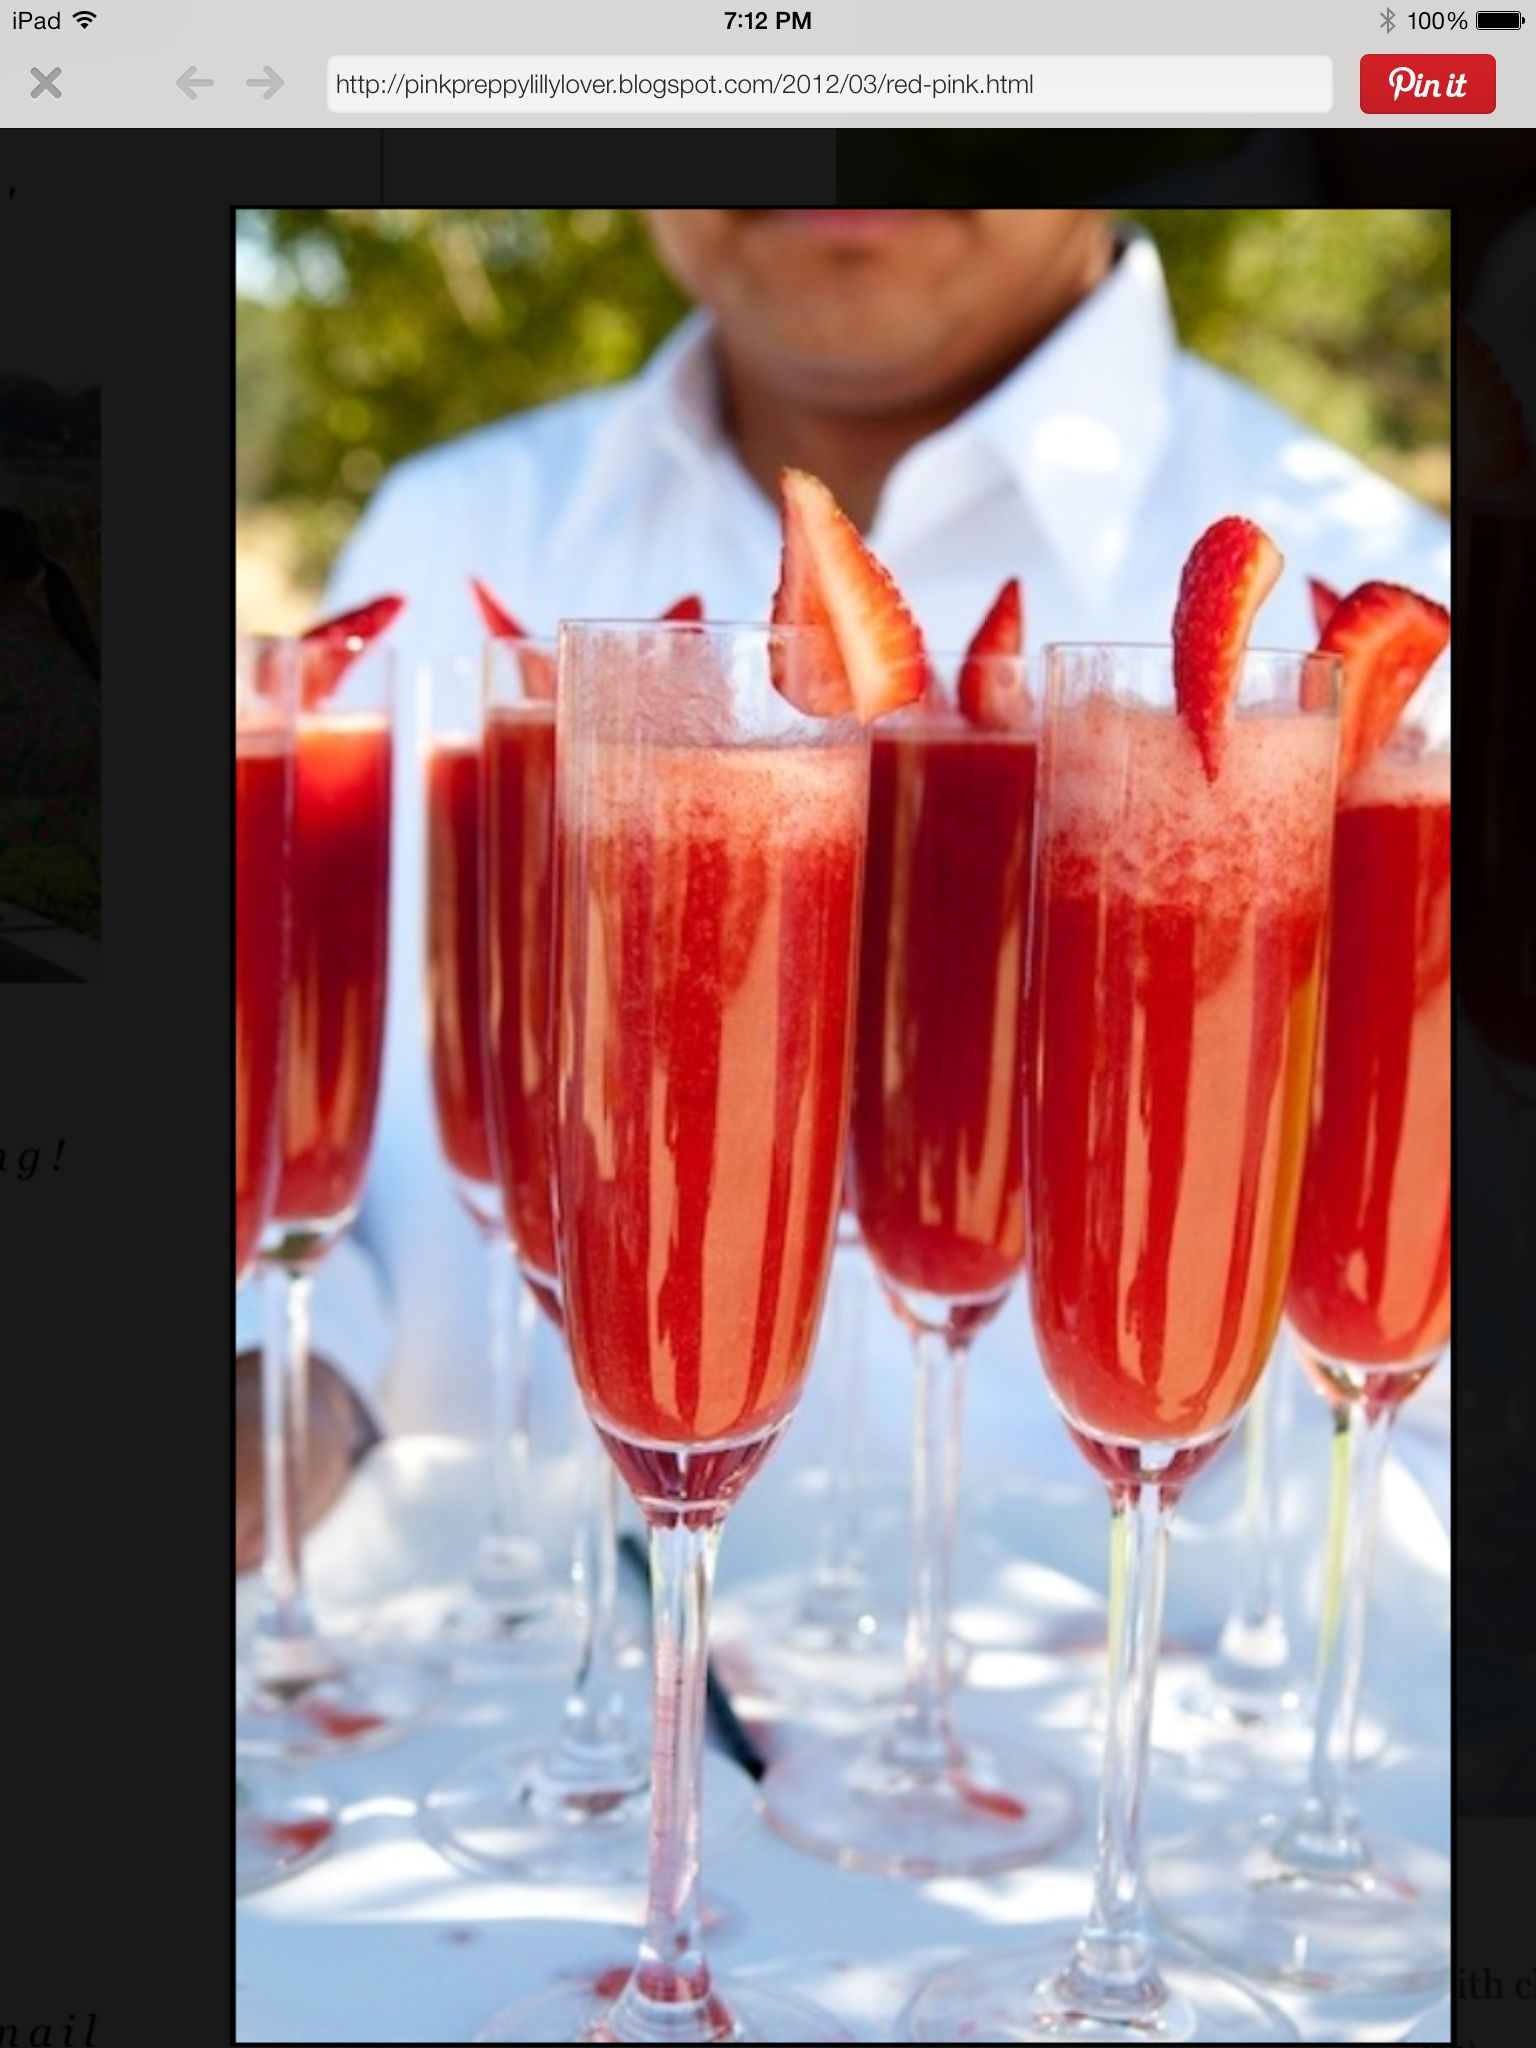 Mmmmmmm...Strawberry Mimosas: puréed strawberries blended with chilled champagne.